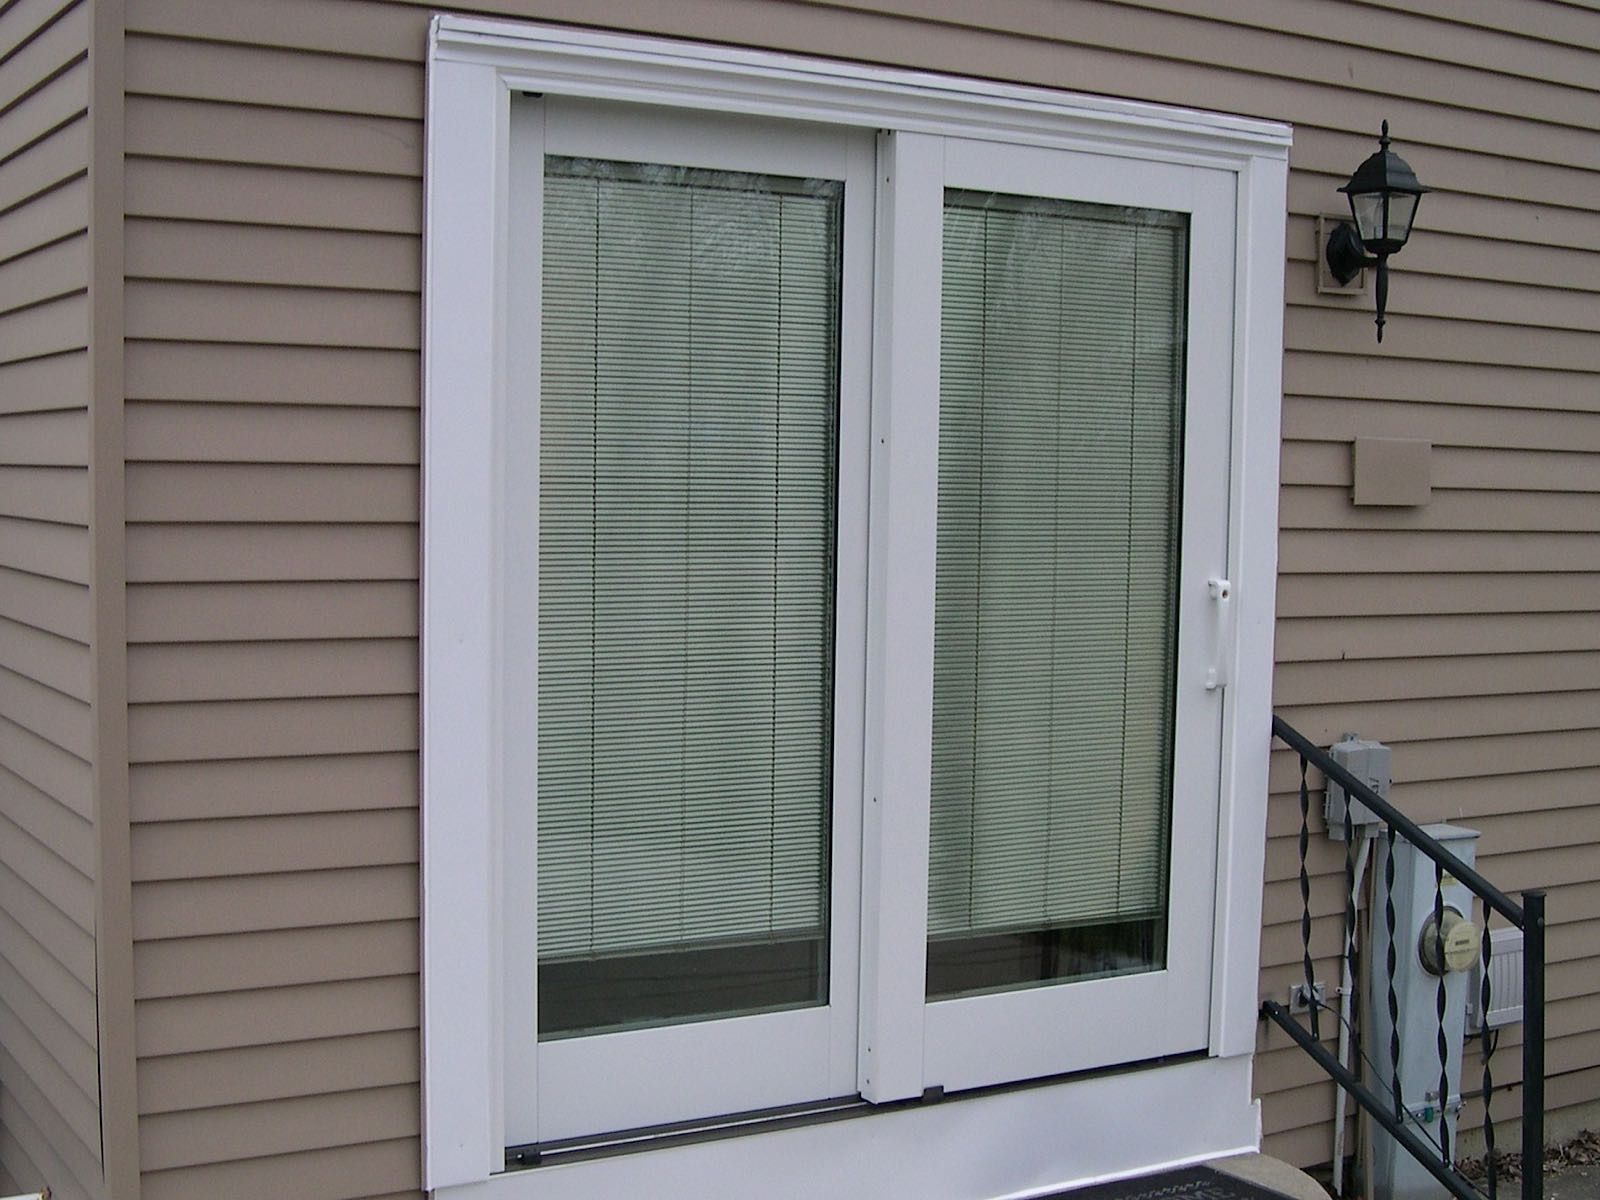 Pella Sliding Patio Door With Blinds Between Gl A Allows You The Choice Of Comfortably Relaxing Outside While En